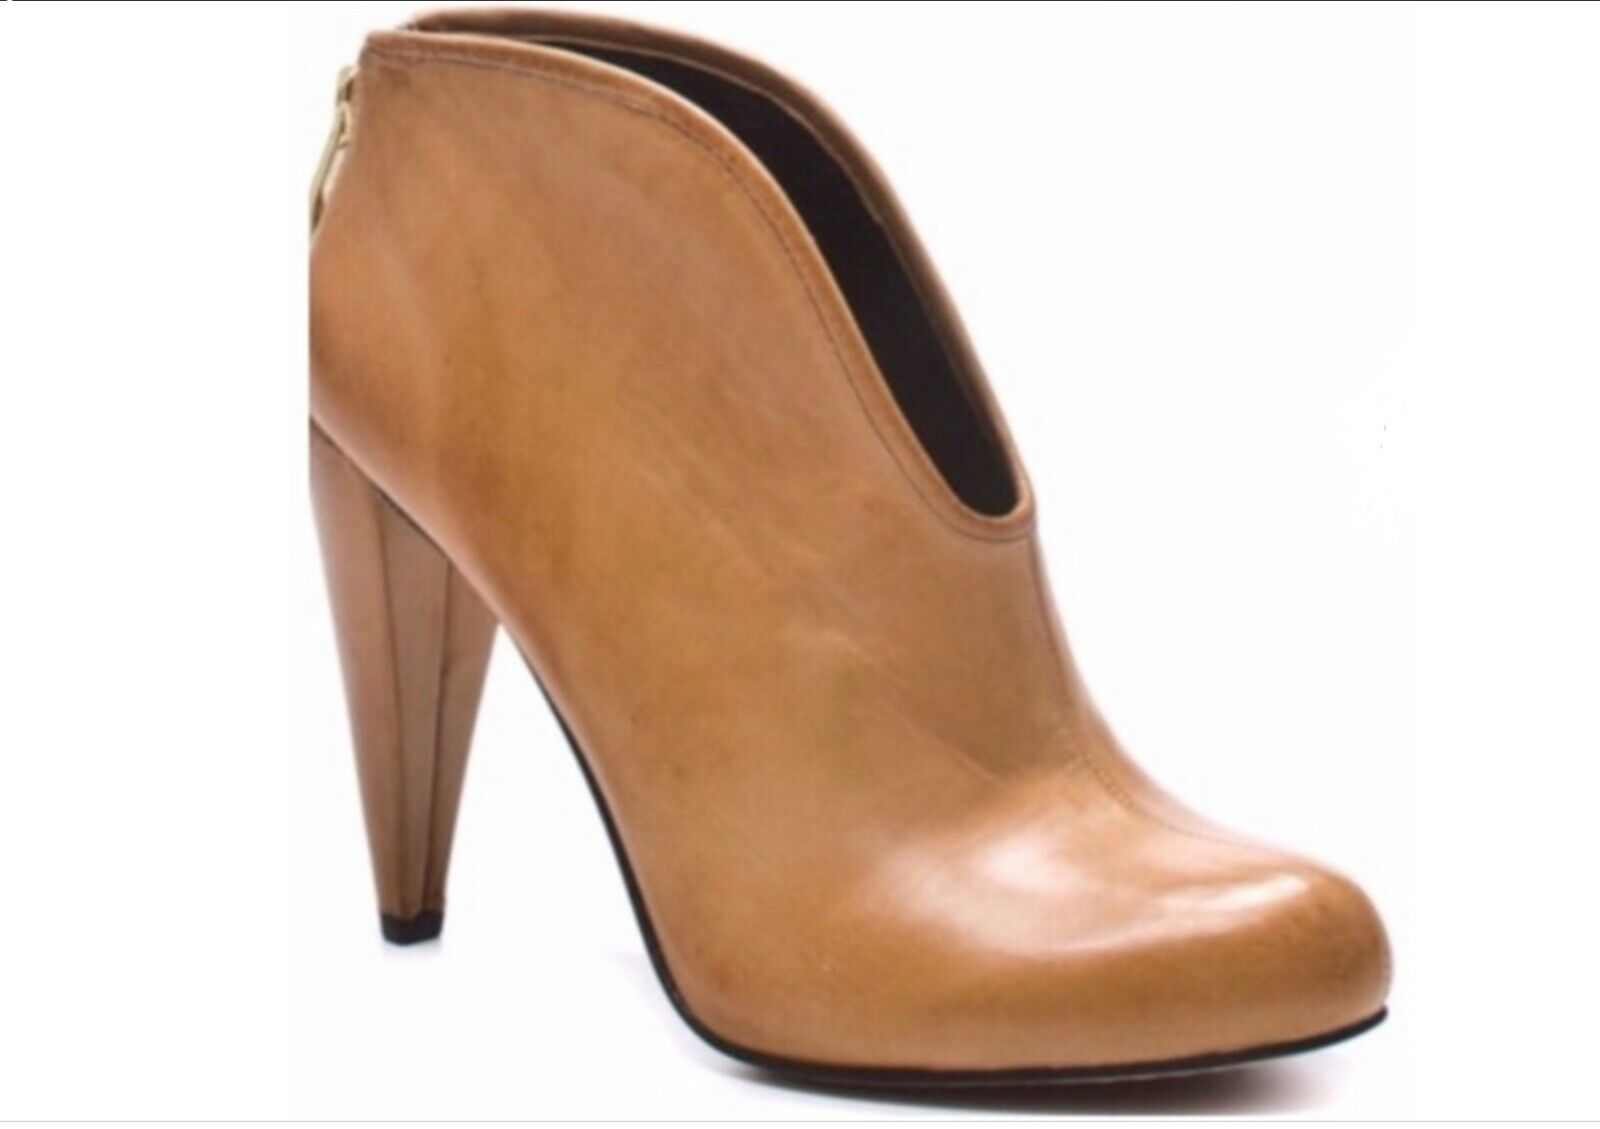 NIB Vince Camuto bottesies in Caramel Taille US 9.5